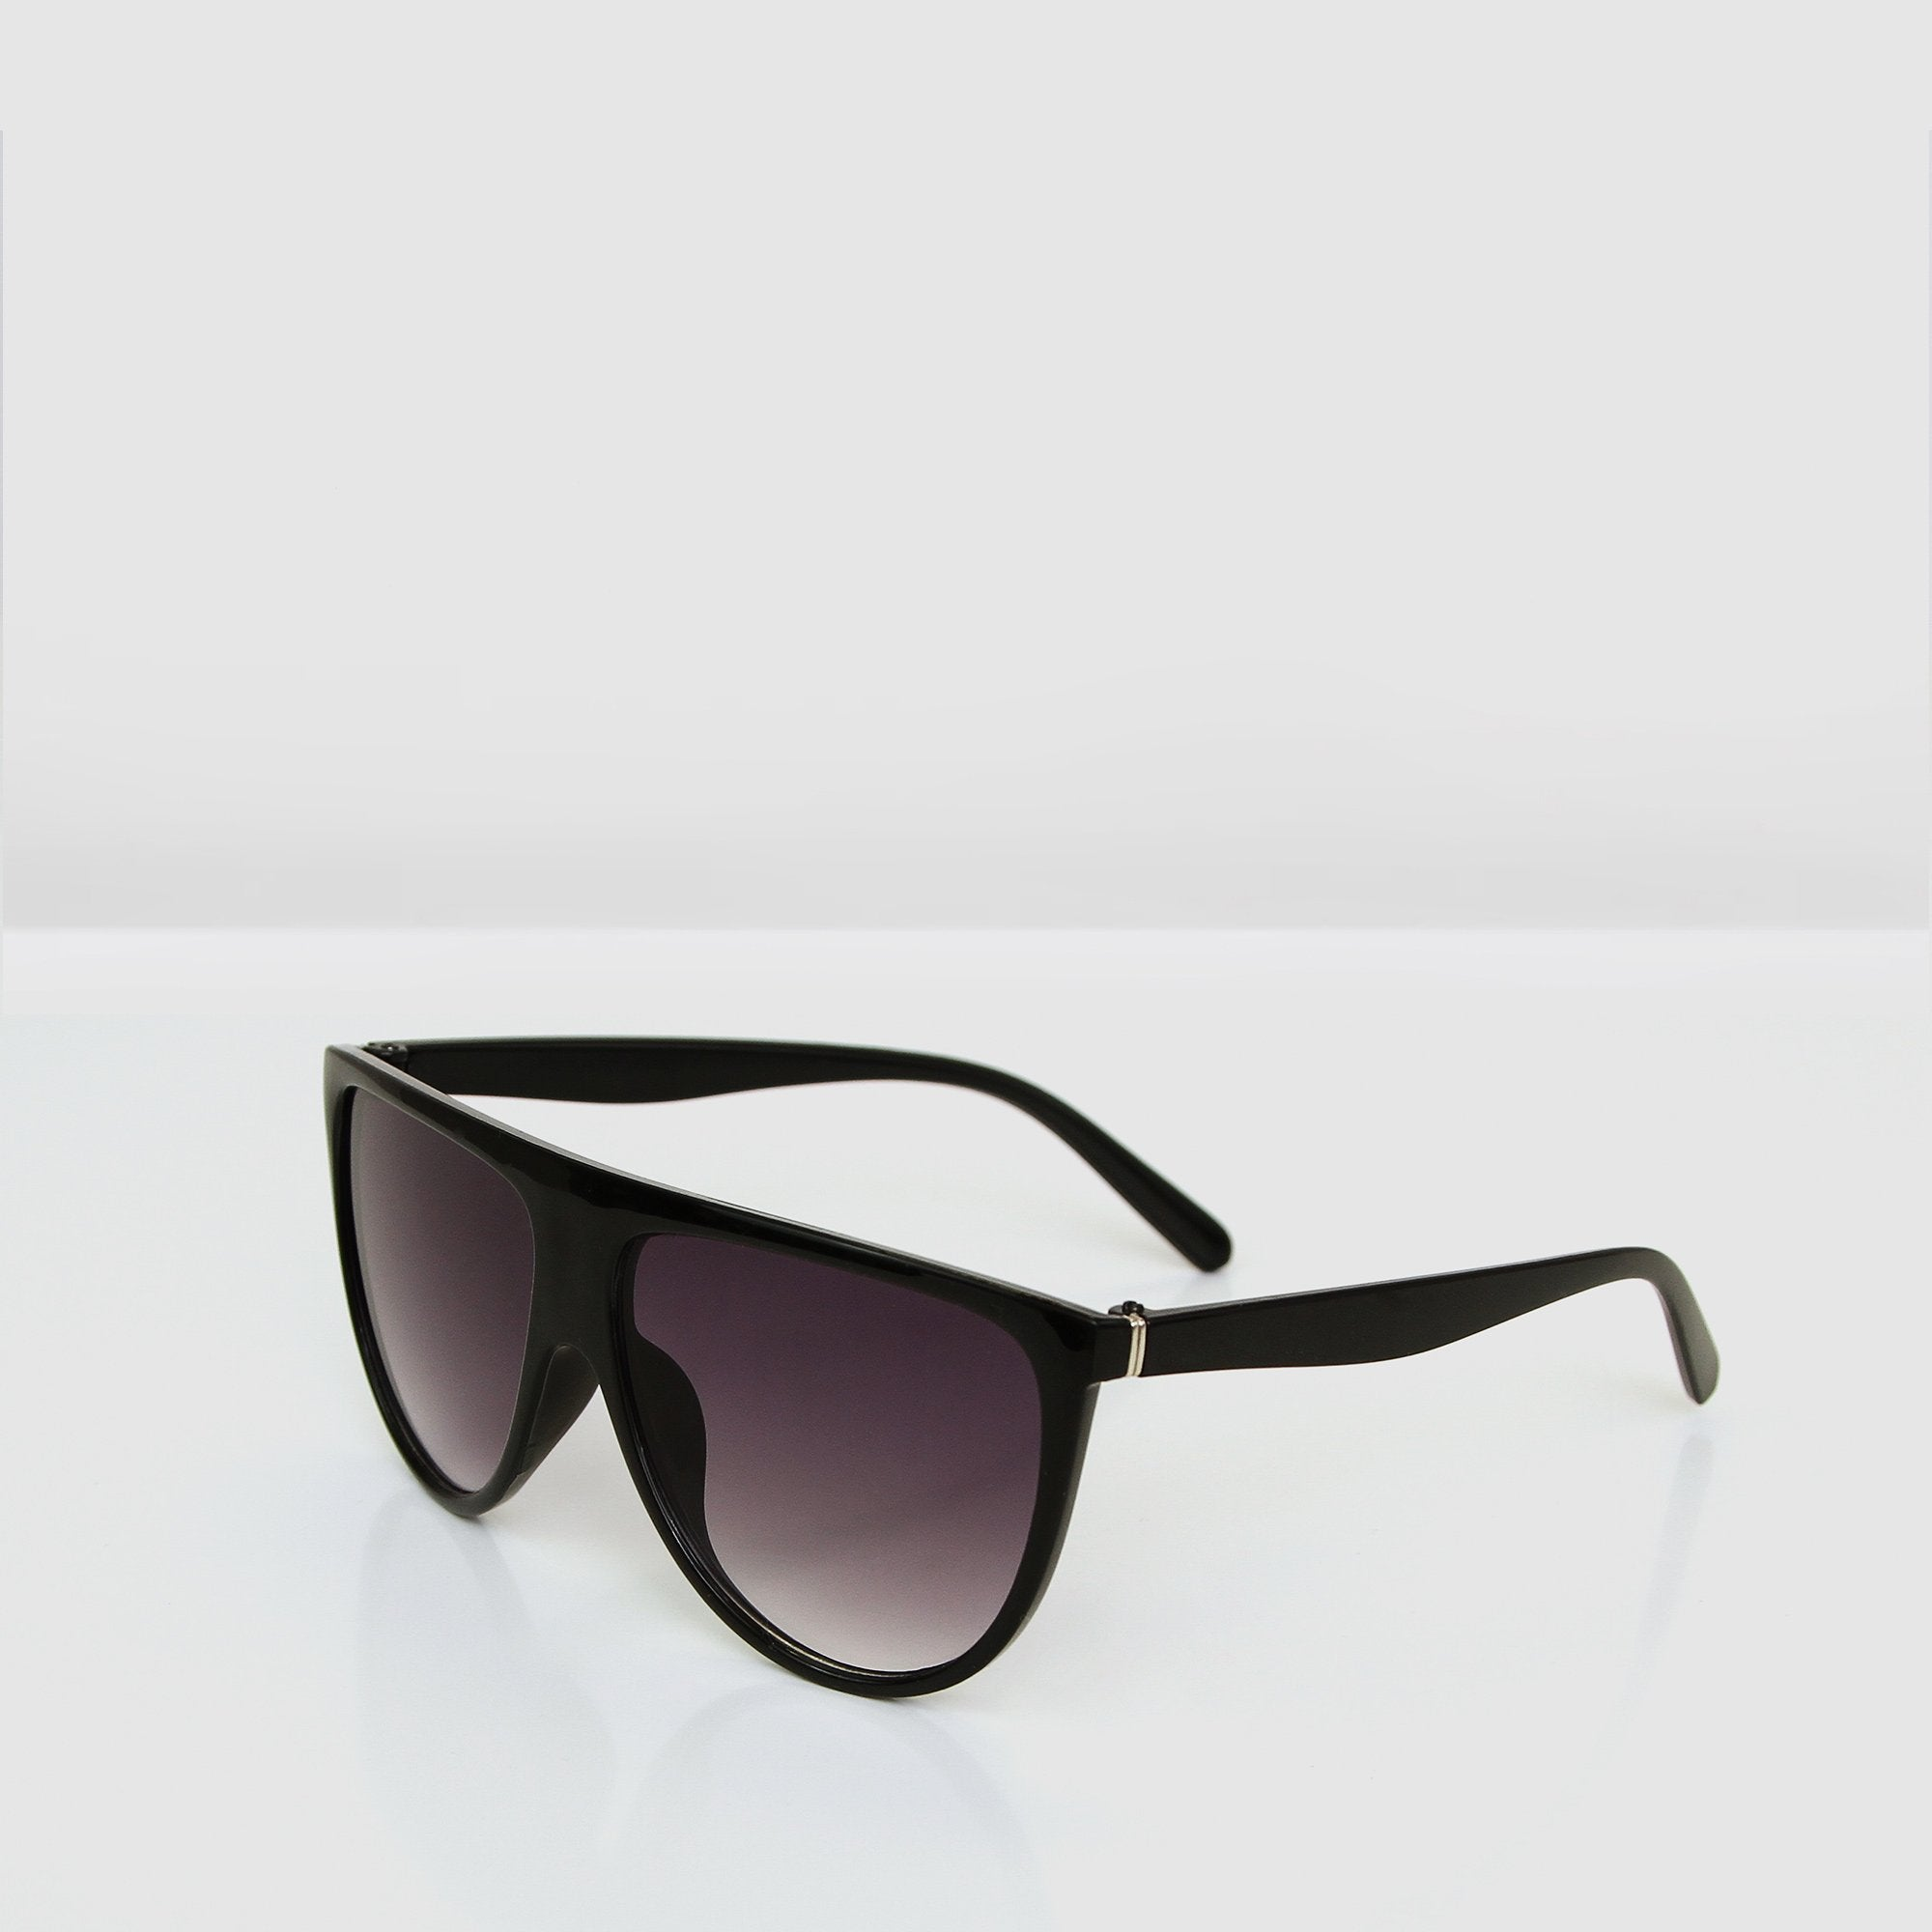 SG0027-DUTS---sunglasse-black-side.jpg